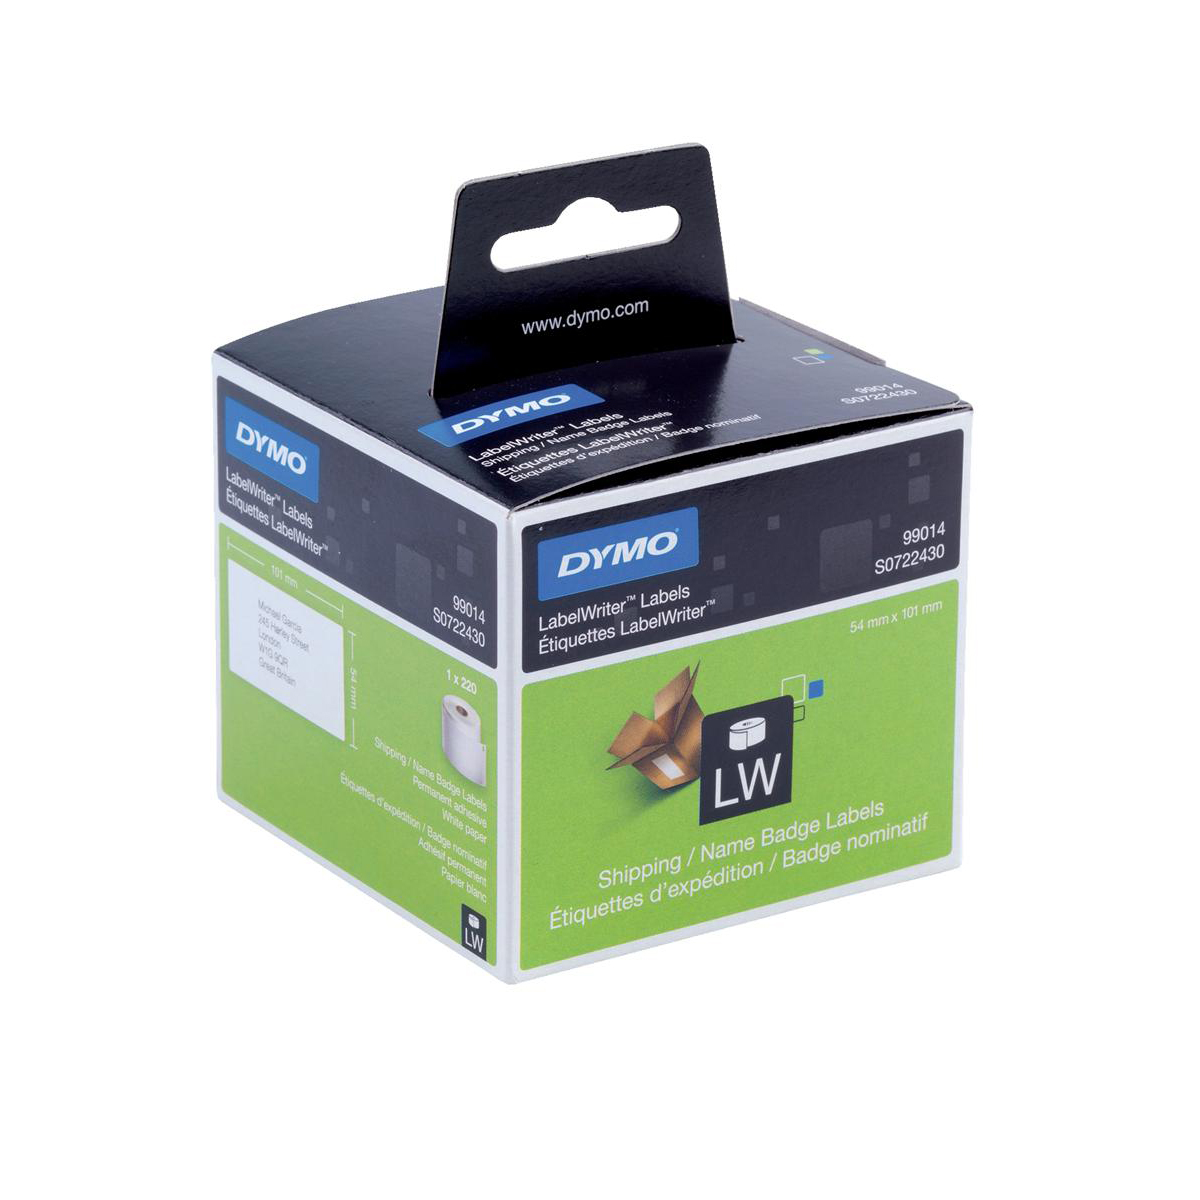 Dymo Labelwriter Labels Name Badge and Shipping 54x101mm White Ref 99014 S0722430 Pack 220